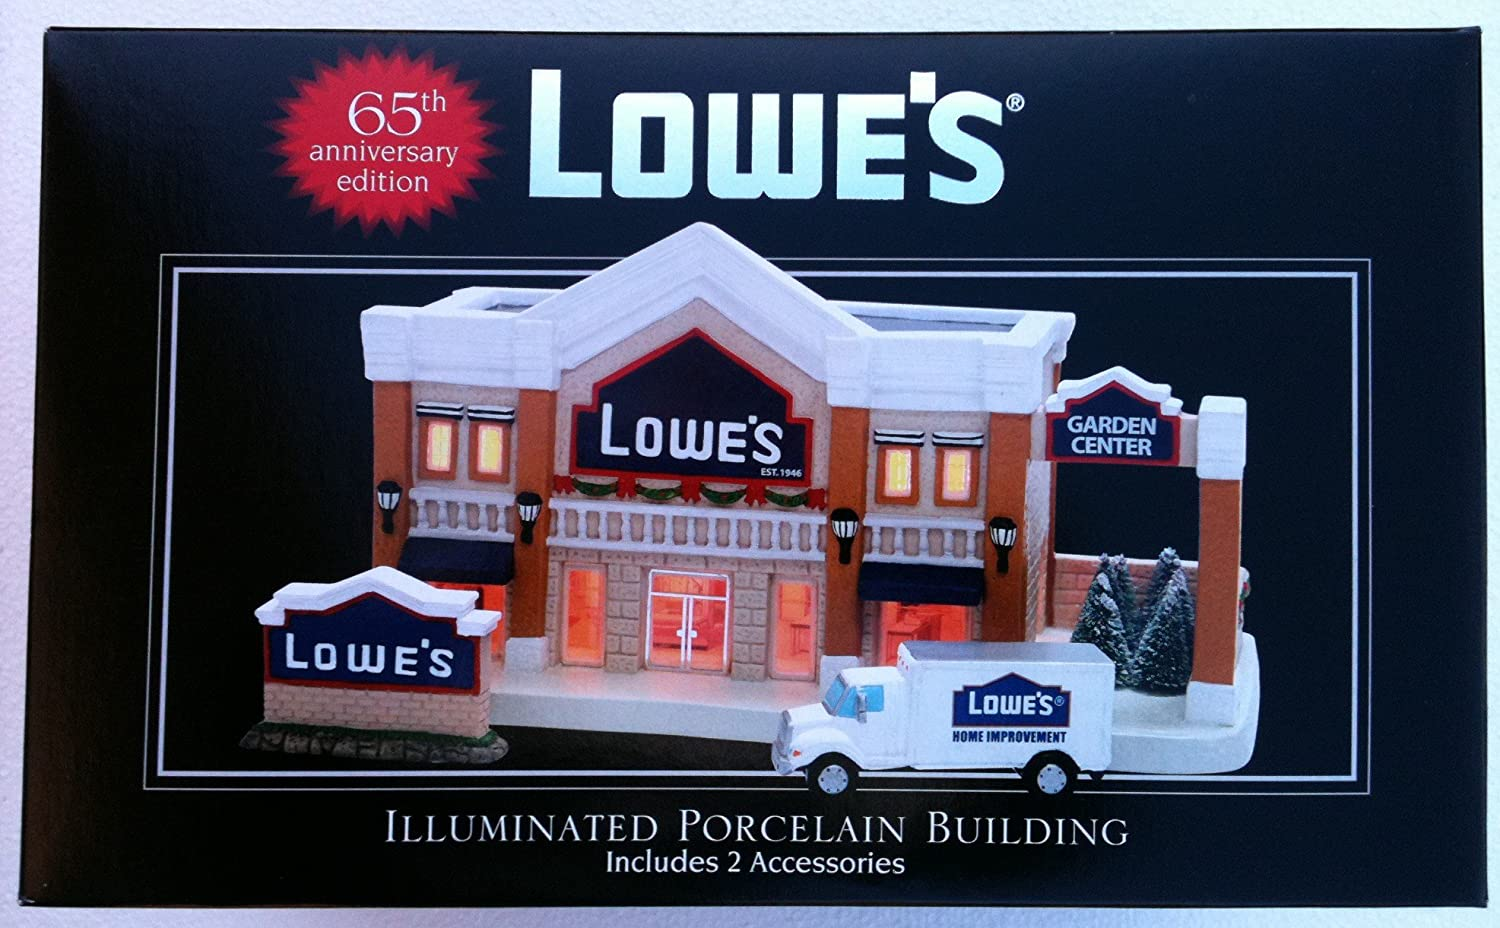 christmas eve lowes illuminated porcelain building with 2 acessories 65th anniversary edition amazoncouk kitchen home